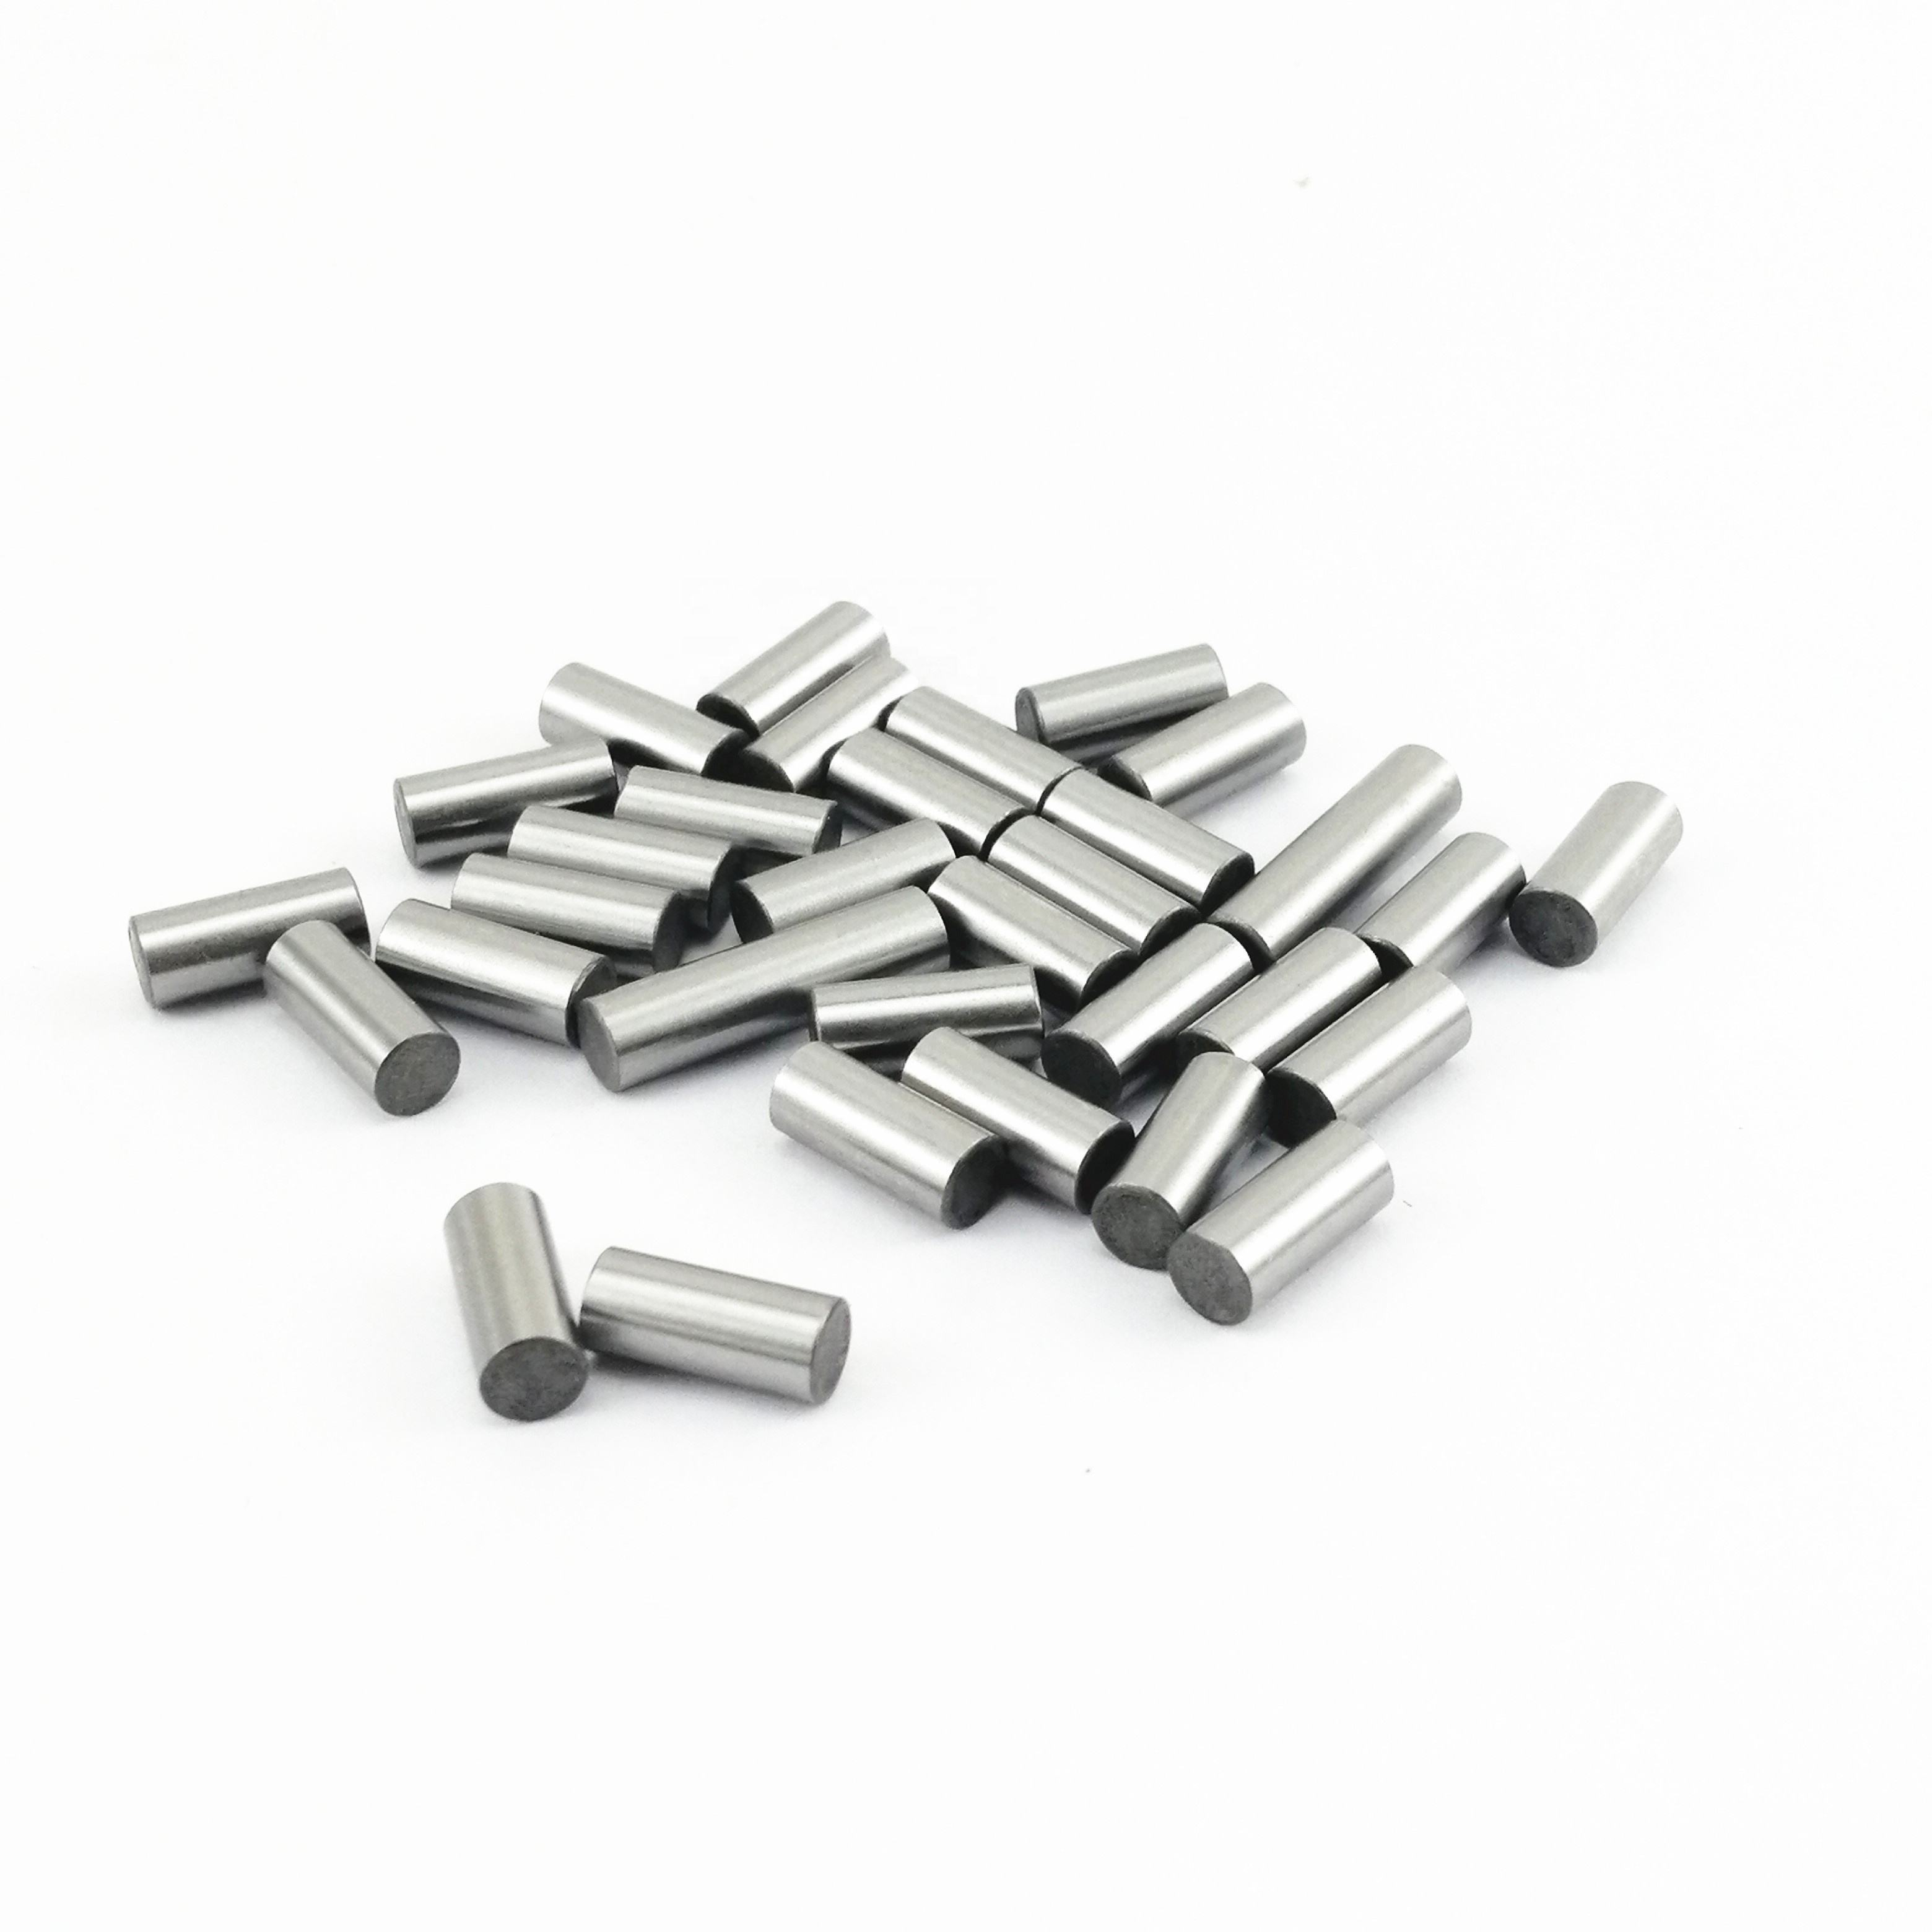 8.5x21.75mm 8.5mm*21.75mm Straight End Sides Flat Ends Bearing Needles Roller Pins